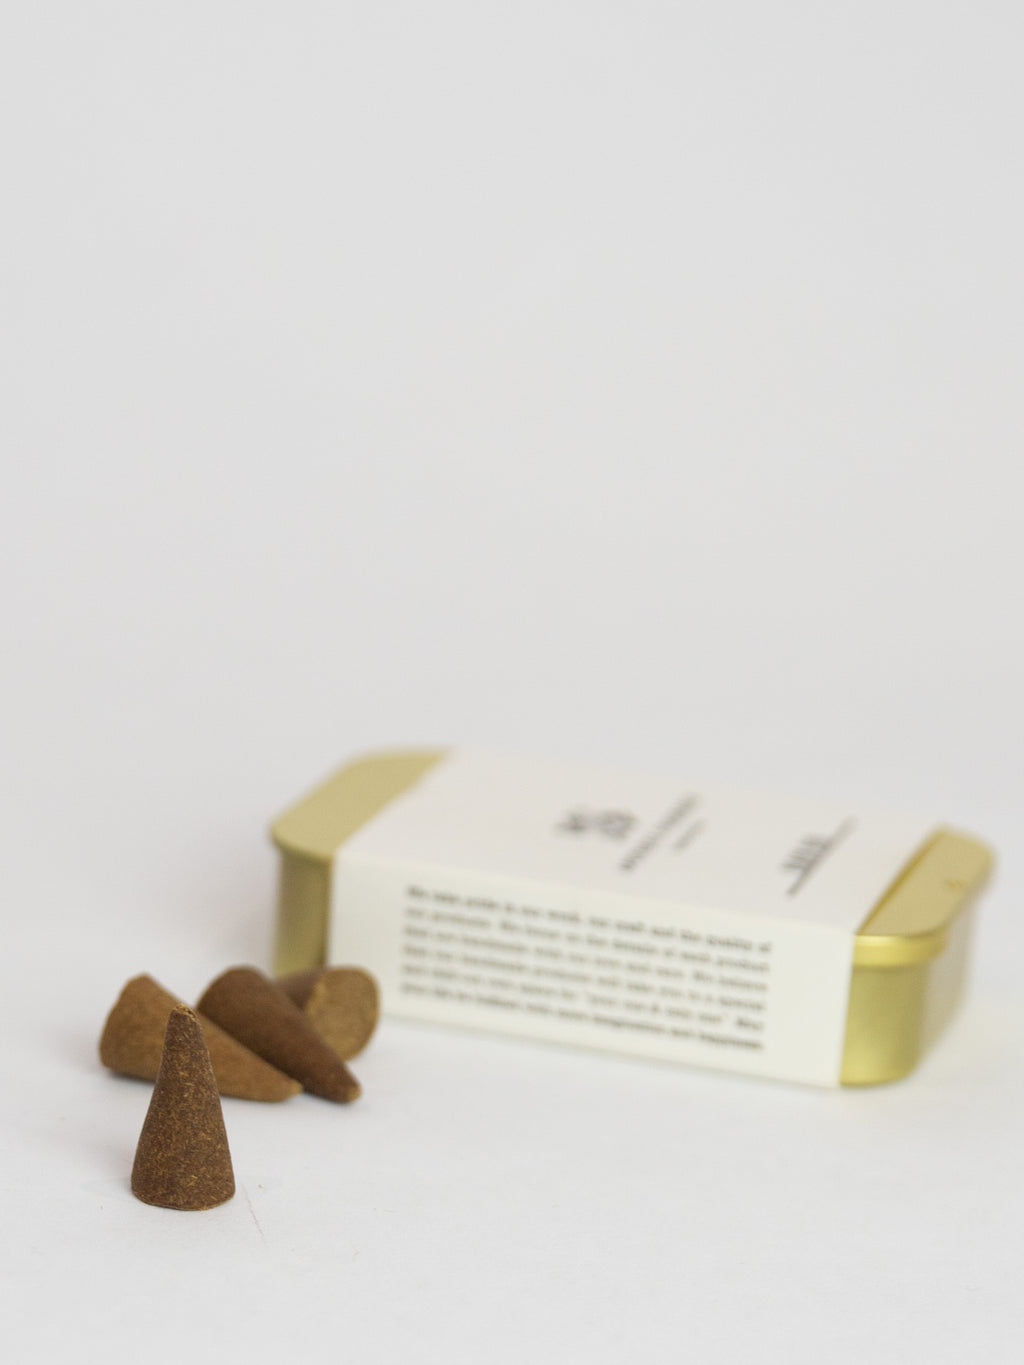 Black Oud Incense Cones